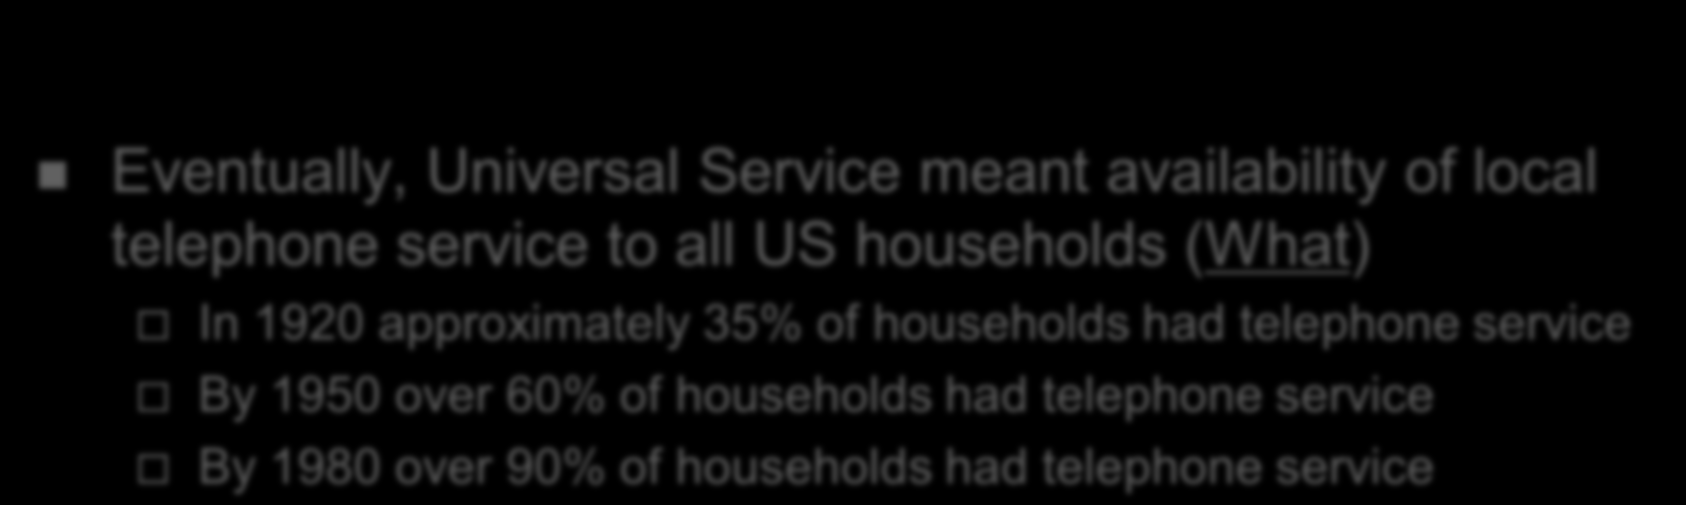 History of Universal Service in the USA Eventually, Universal Service meant availability of local telephone service to all US households (What) In 1920